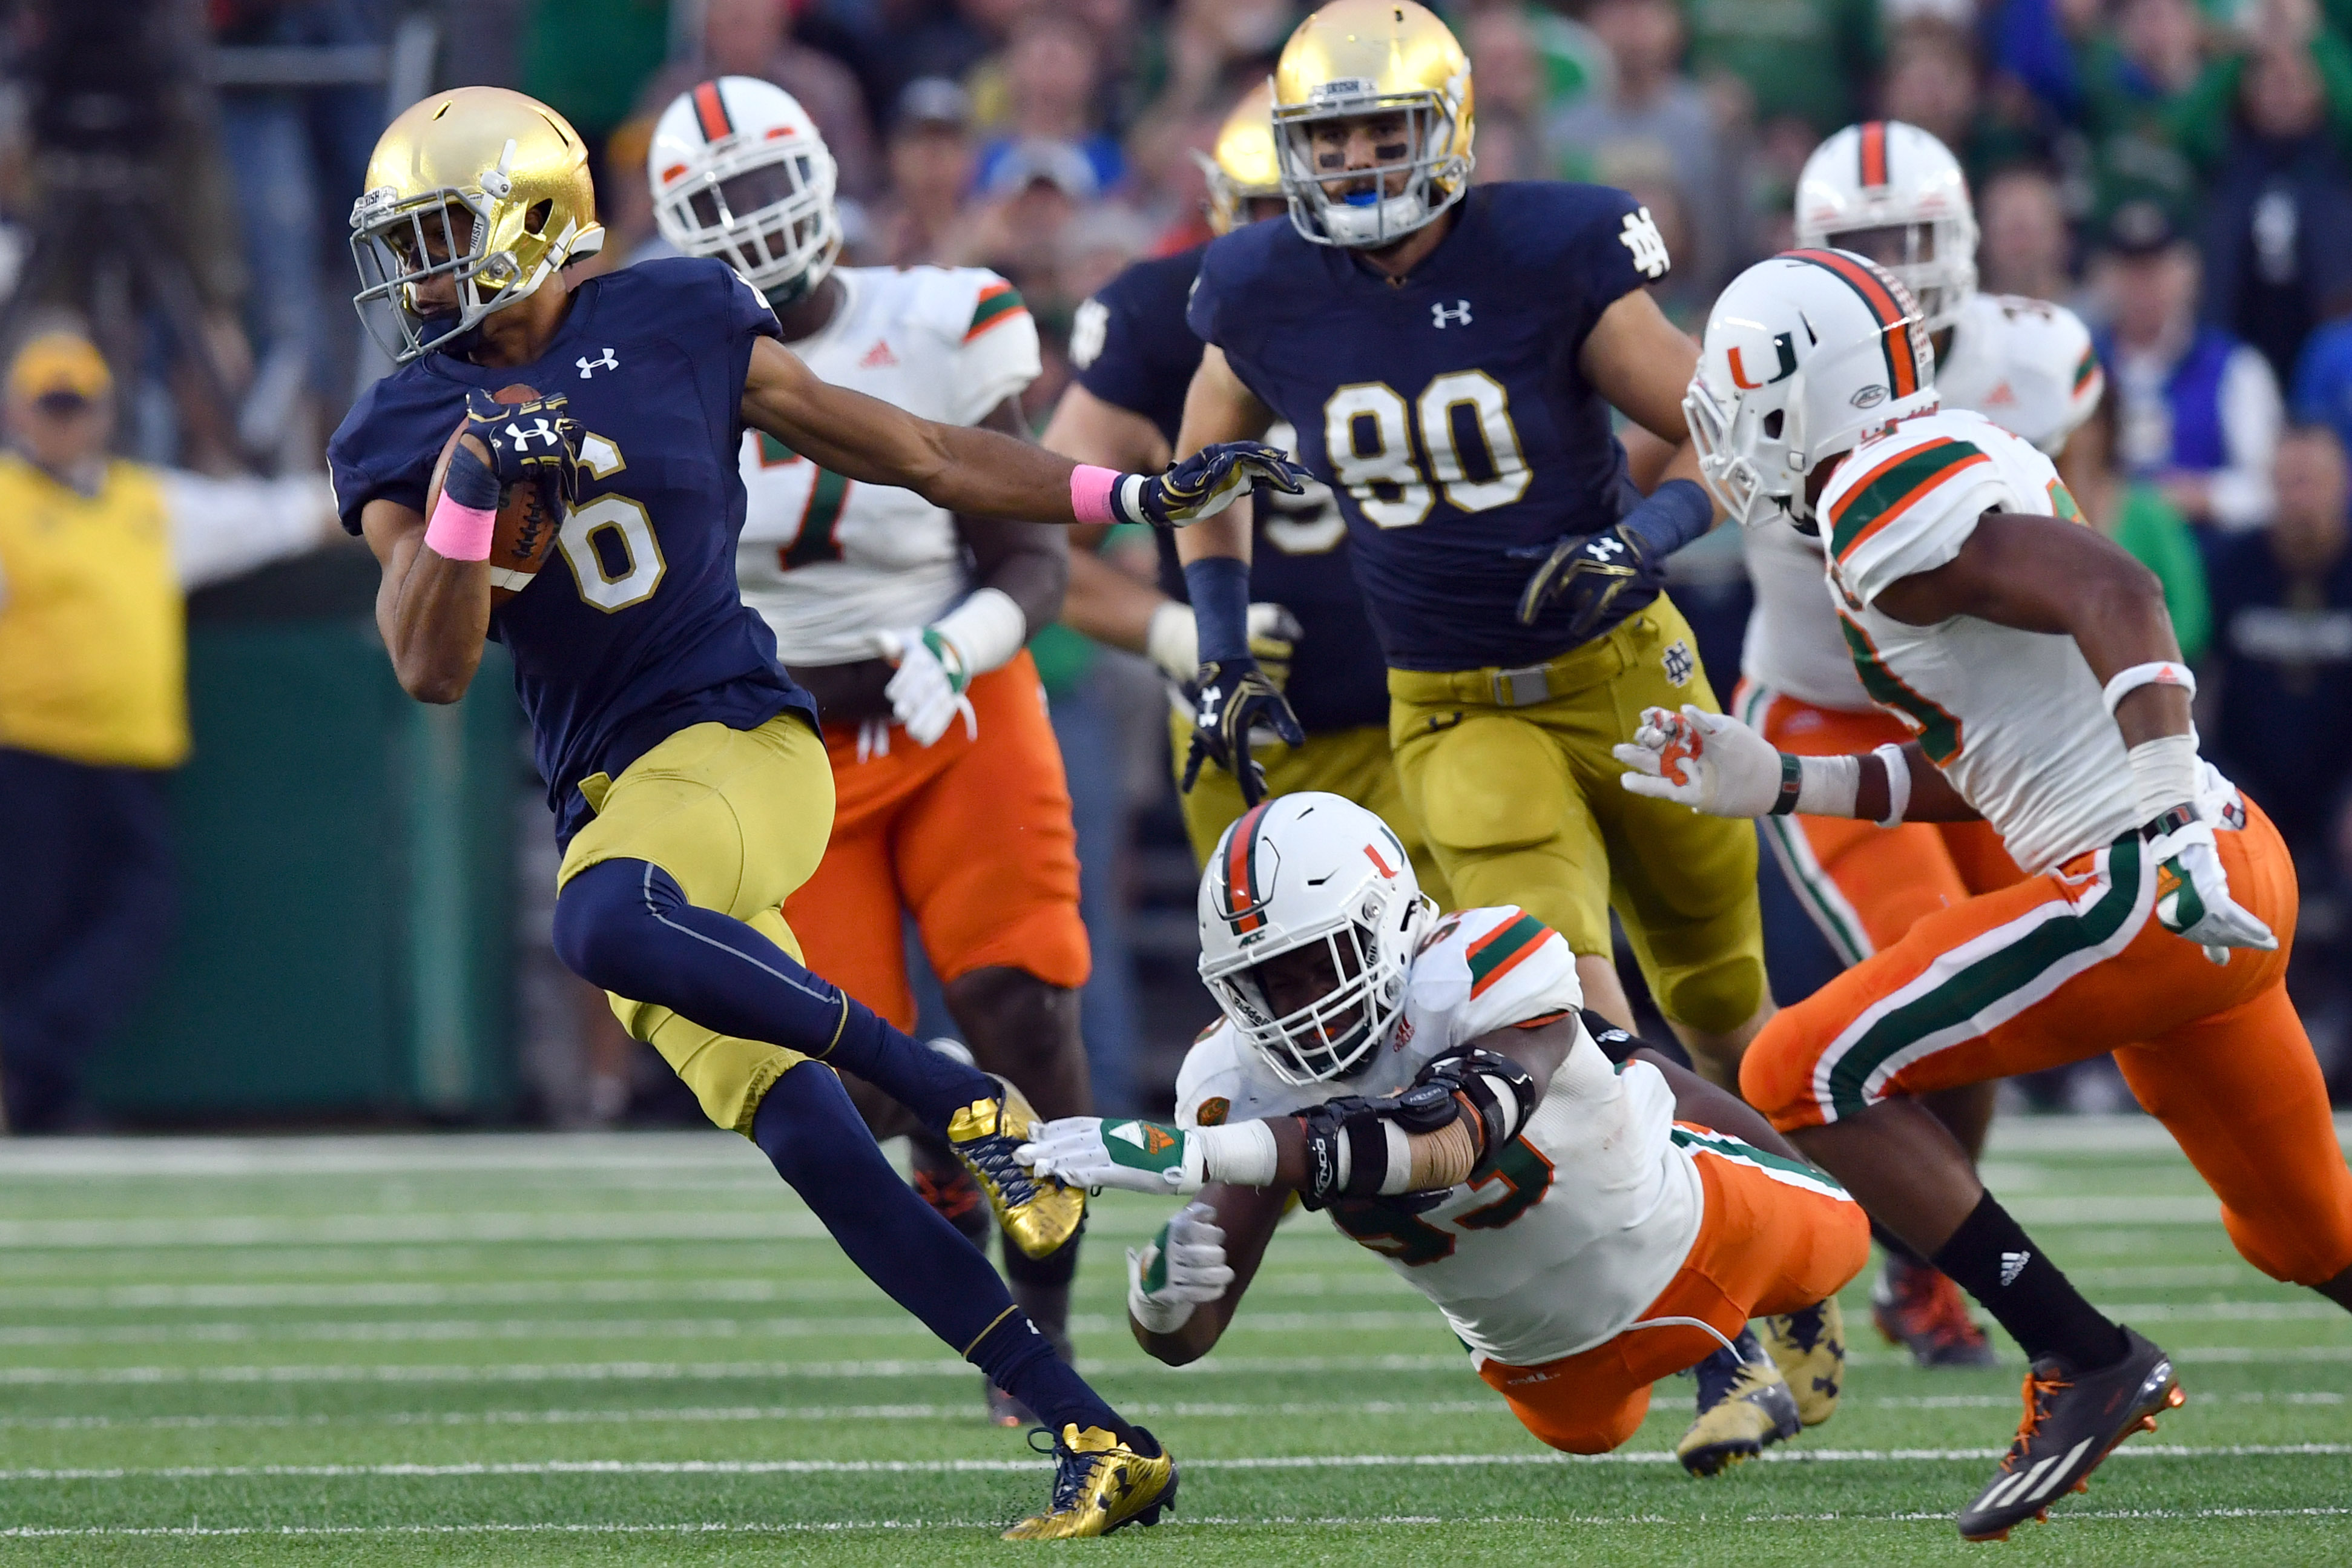 Top 5 notre dame players who will enter the 2018 nfl draft - Notre dame football wallpaper ...